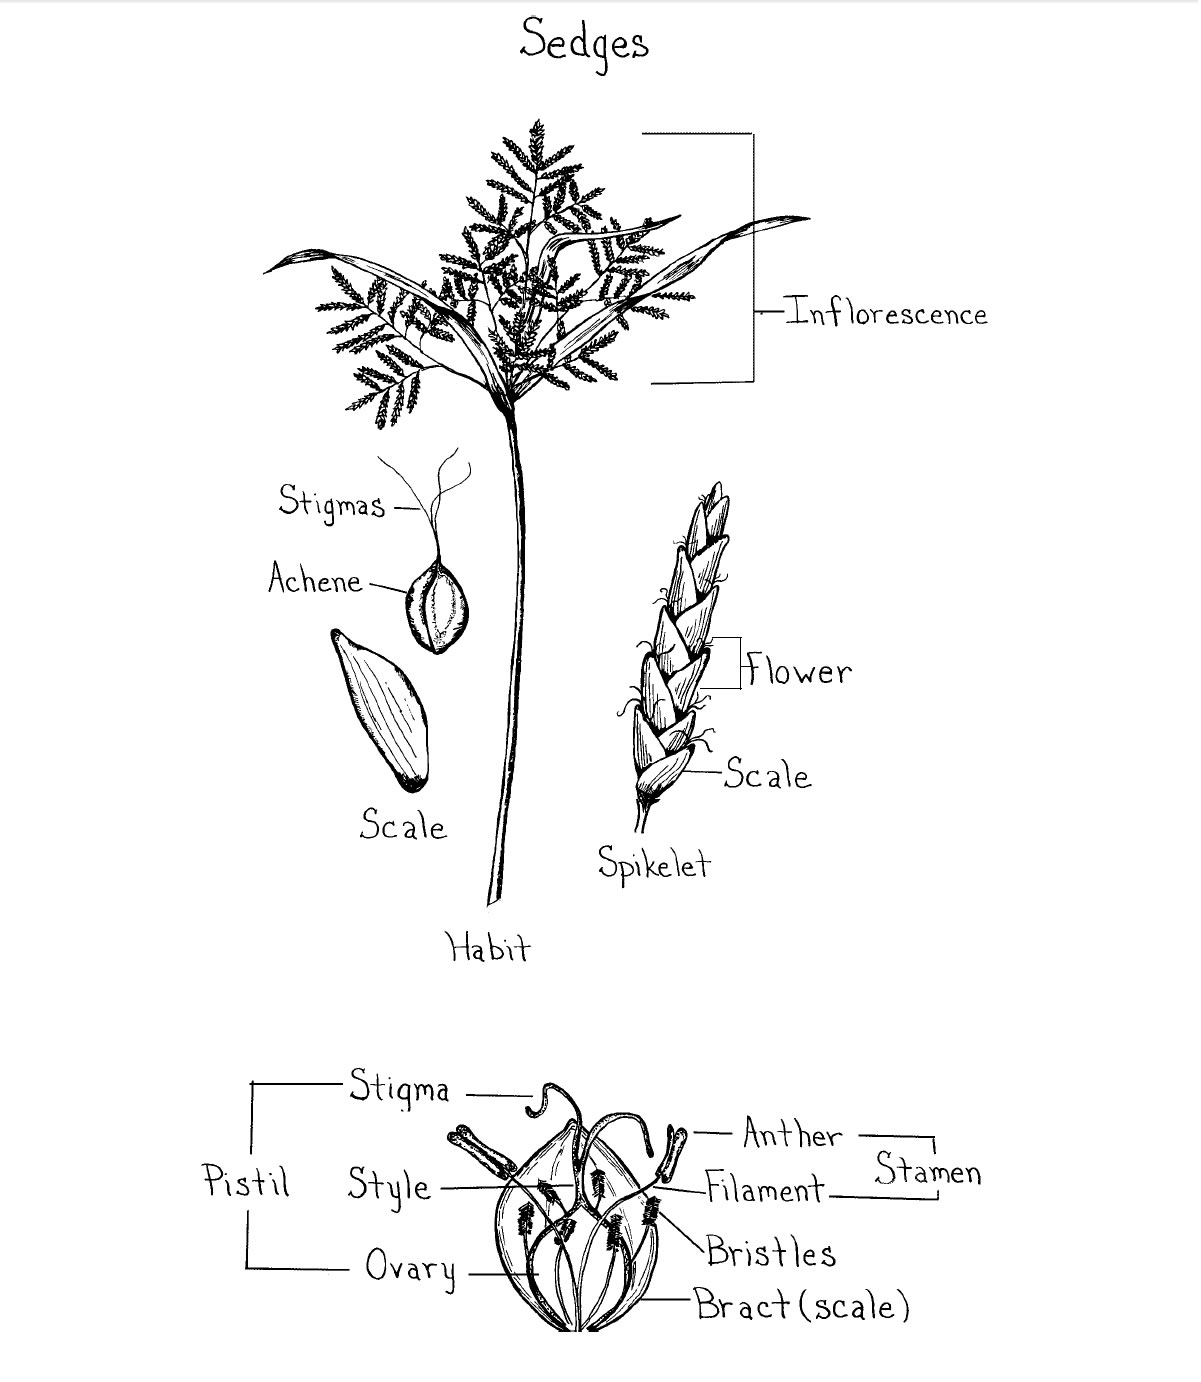 Figure 3. Sedge Floral Parts (Credit: Norman Melvin, USDA Cold Region Research and Engineering Laboratory).